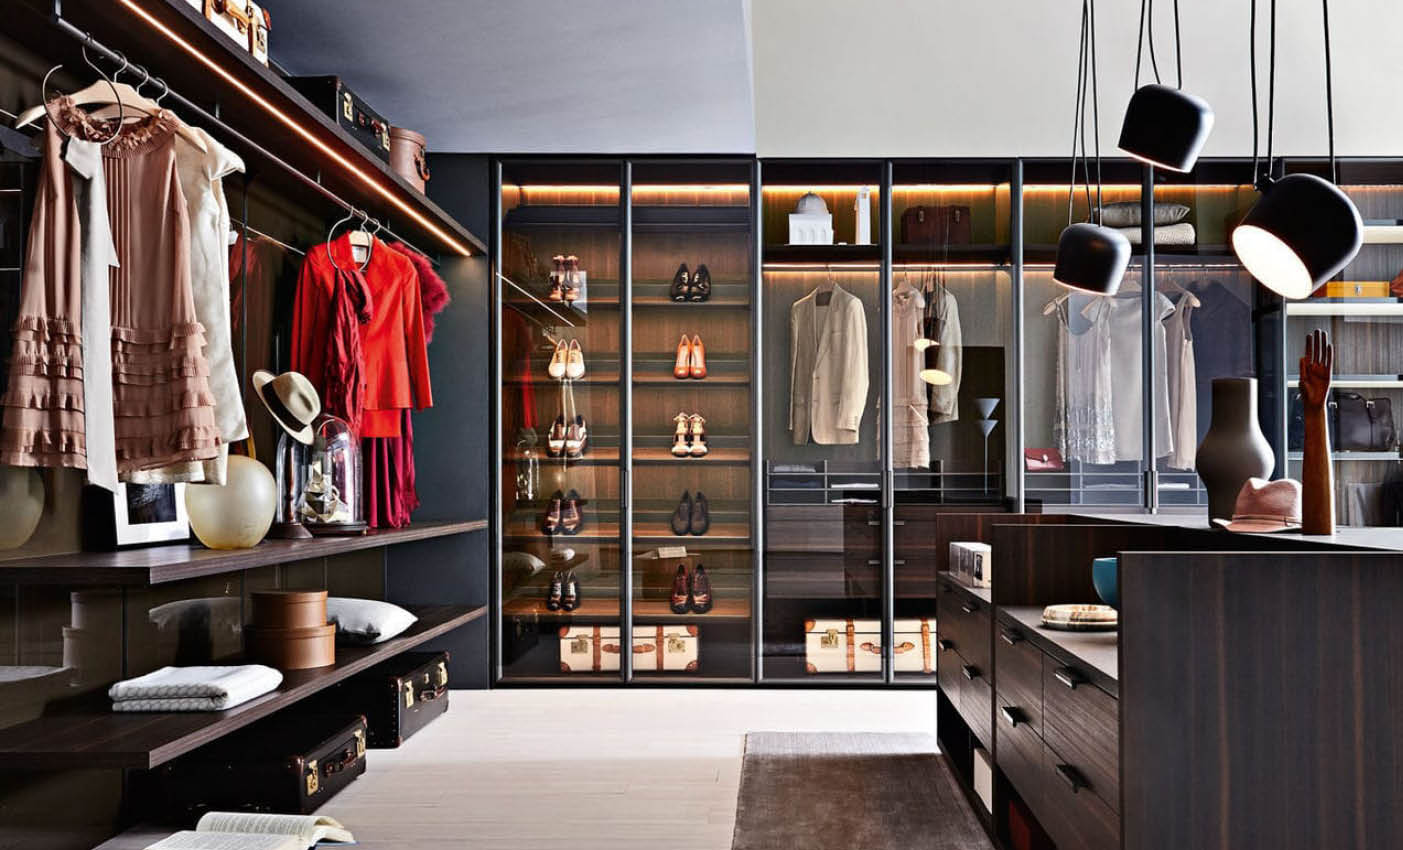 Composition of wardrobes and wall units are two interior design steps of the project of interior spaces